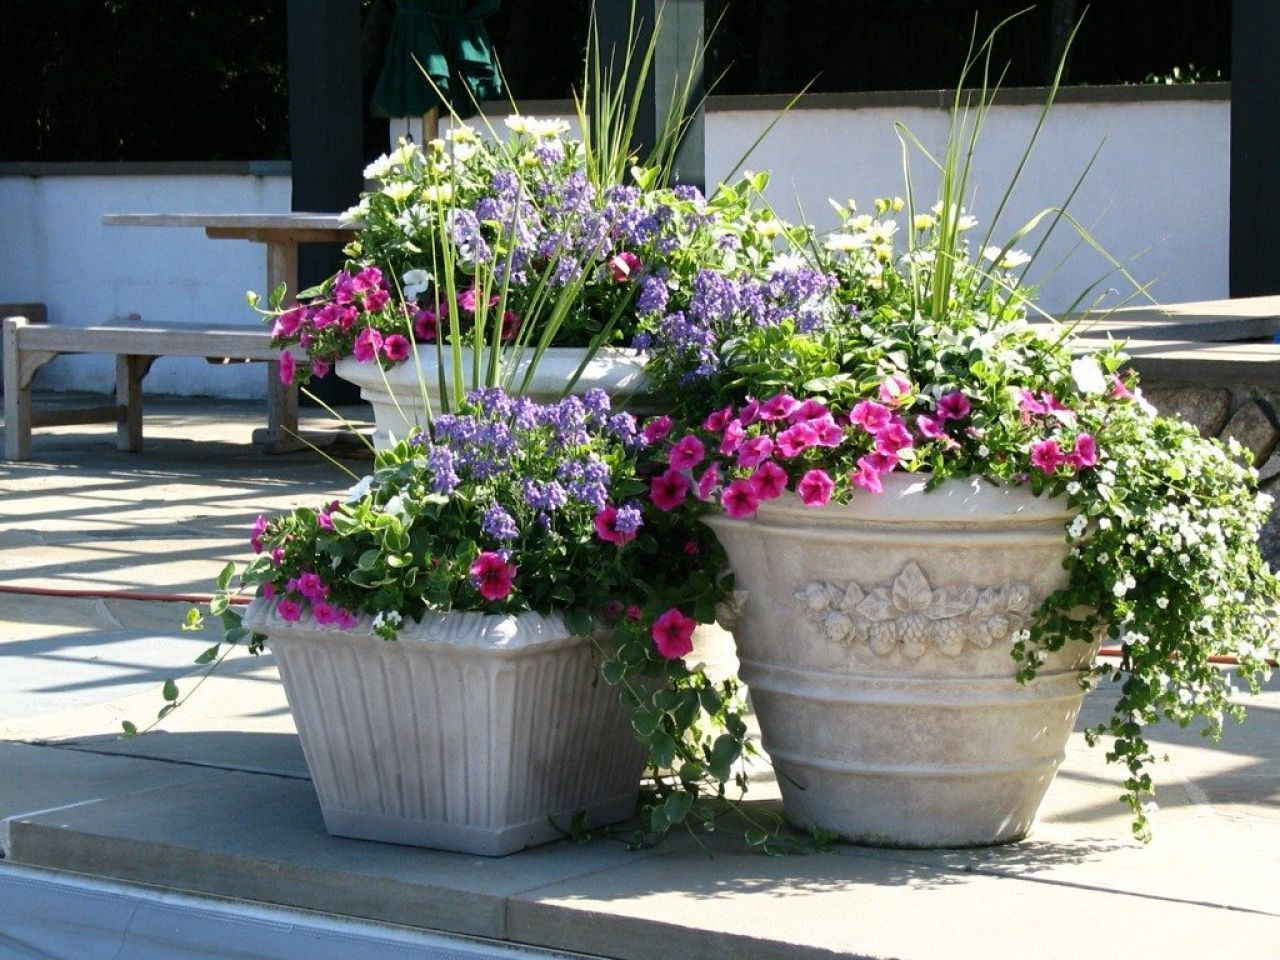 Image Result For Large Flower Pots On Front Porch Potted Plants Patio Outdoor Planters Outdoor Flowers